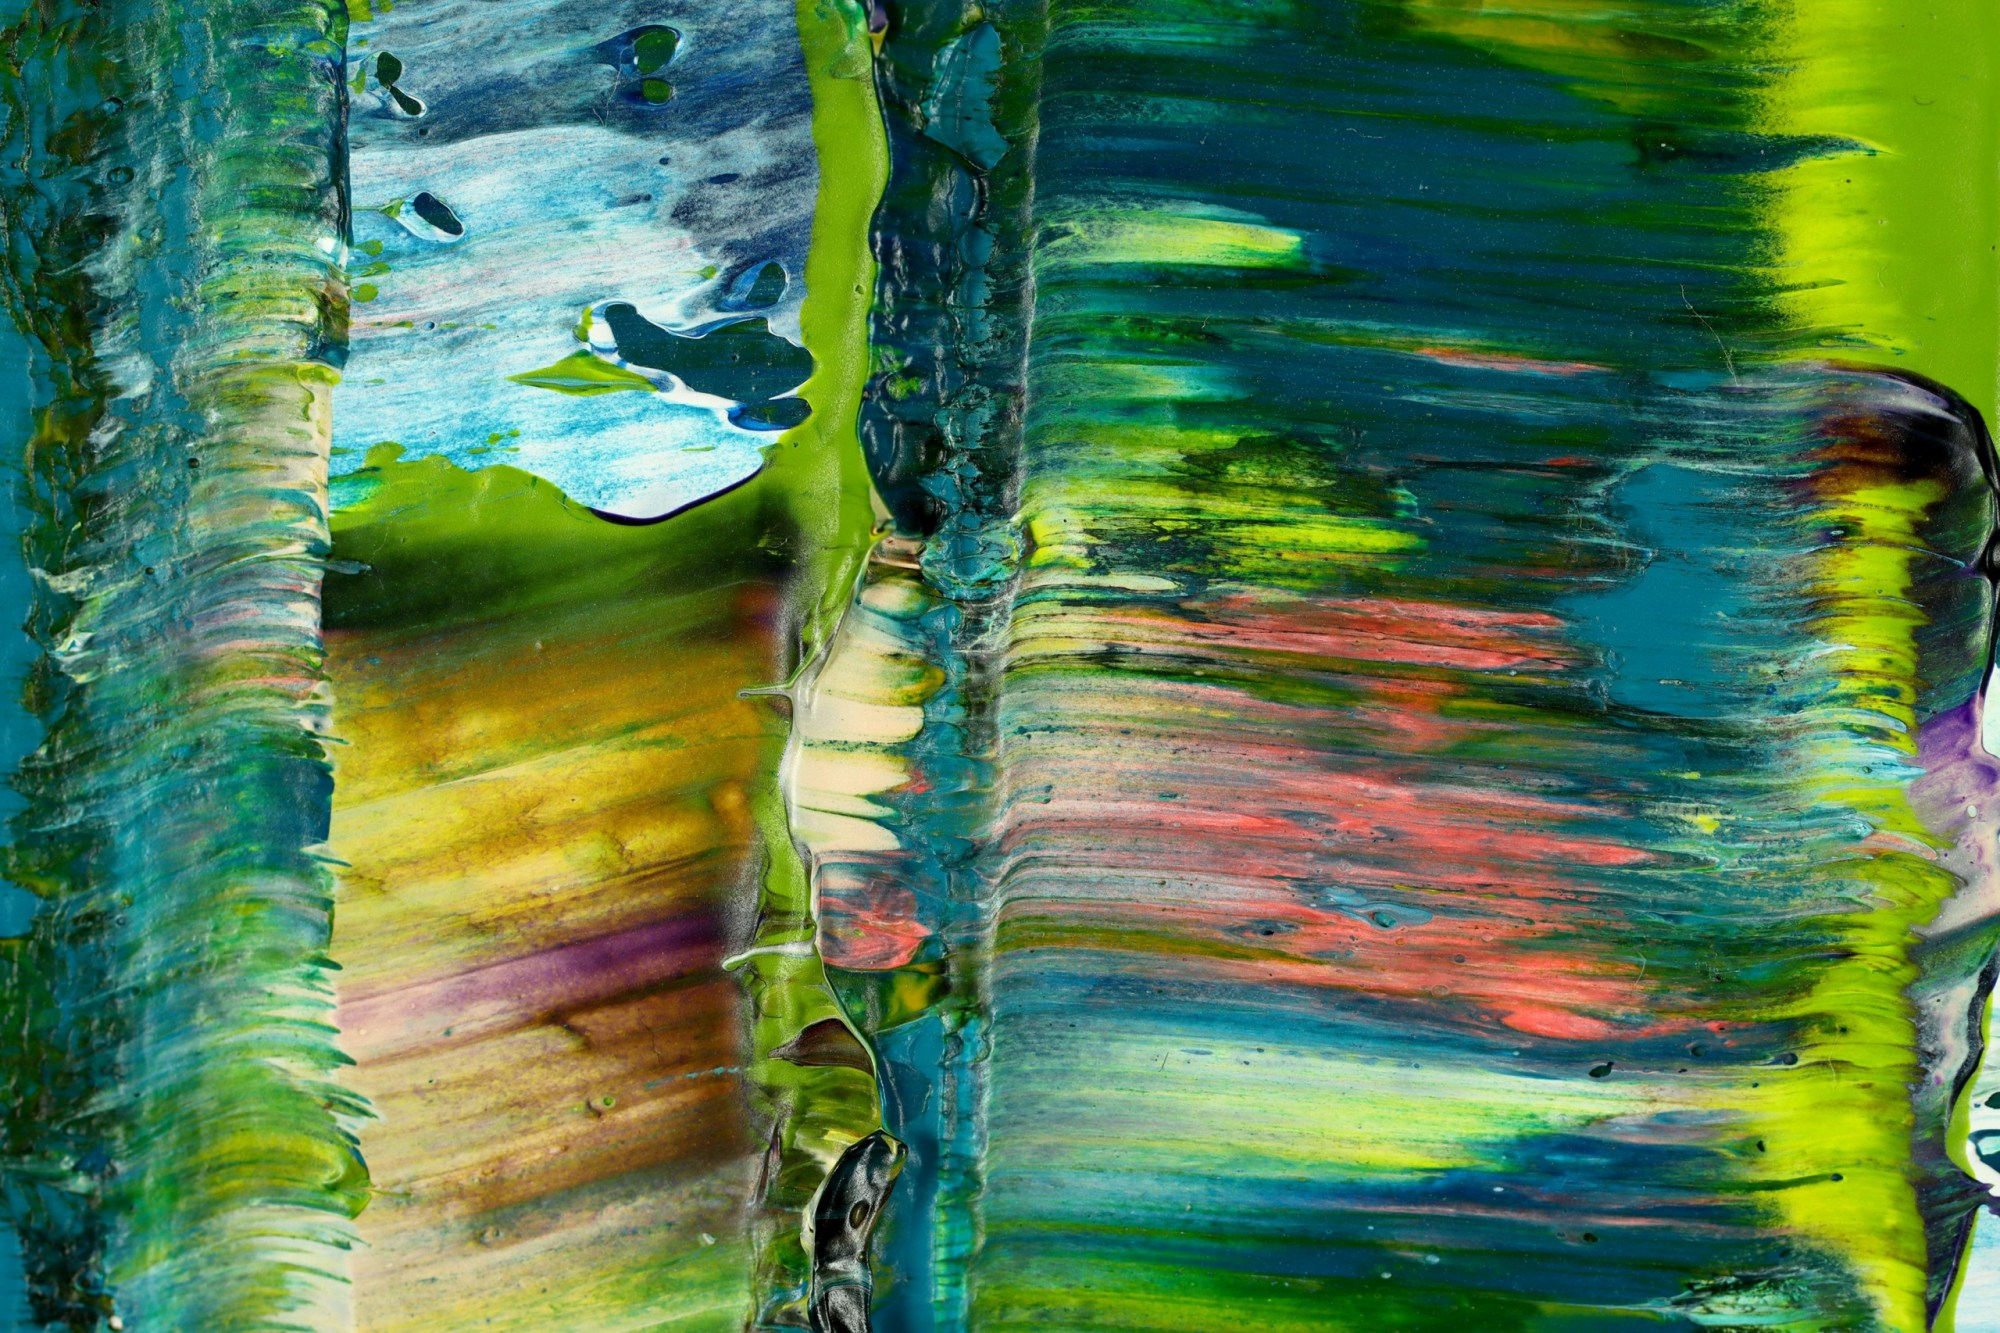 DETAIL / A Matter of Nature 10 (Deep in the forest) (2021)